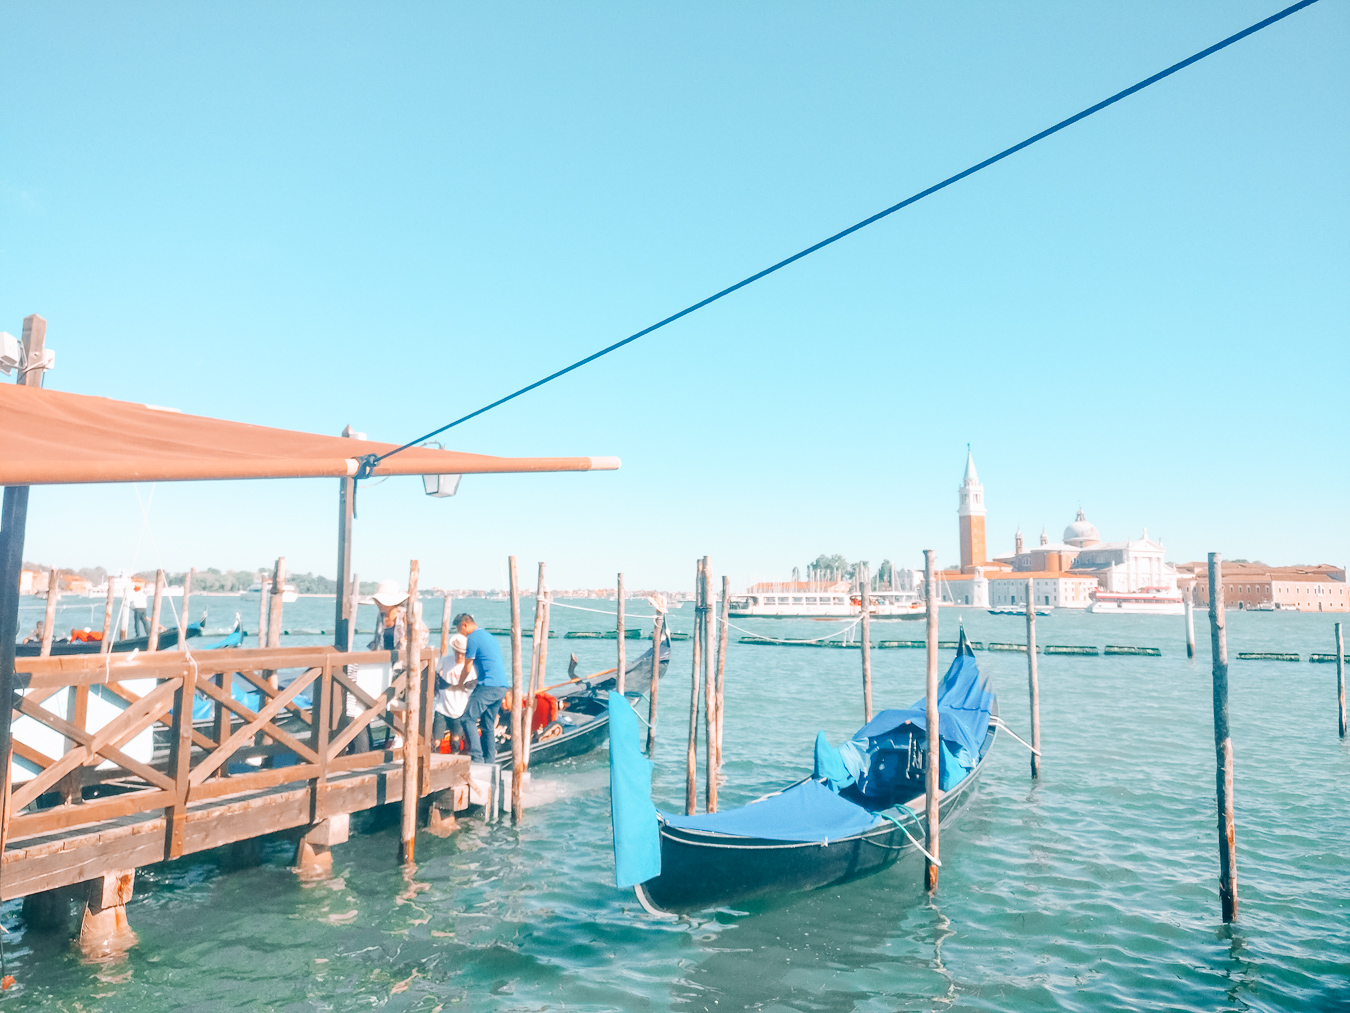 A view of a gondola in Venice